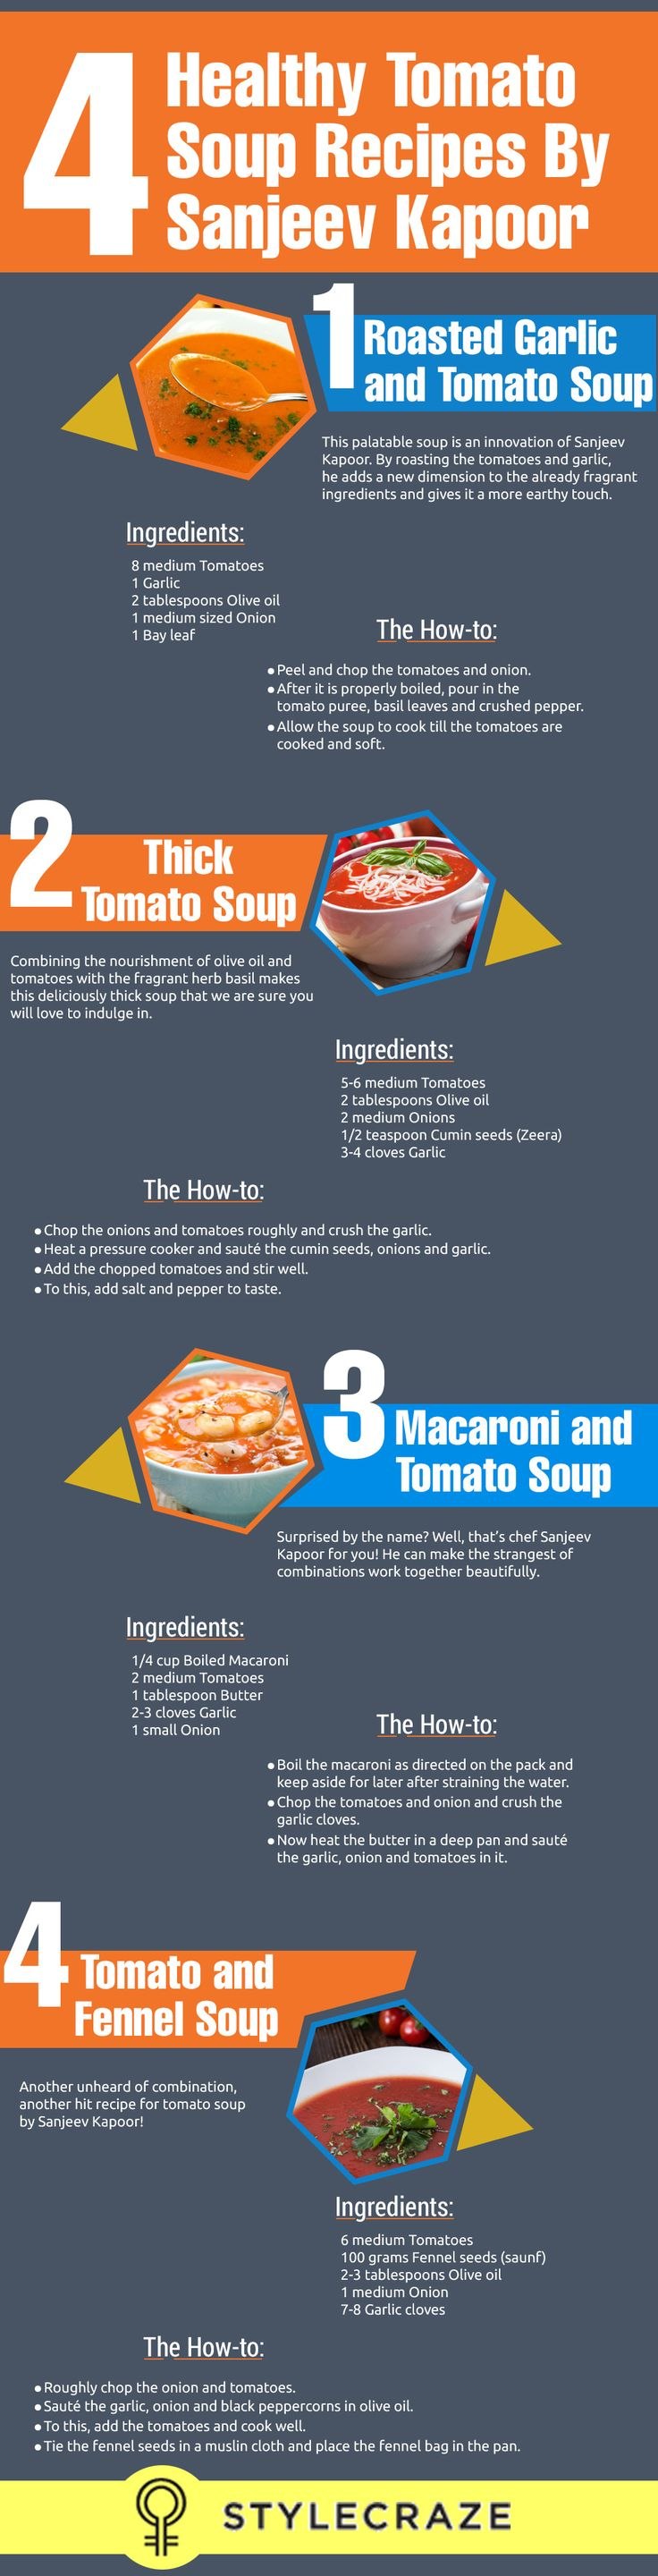 Top 4 Healthy Tomato Soup Recipes By Sanjeev Kapoor : Here are some innovative ways of making tomato soup by Sanjeev Kapoor straight from his kitchen.